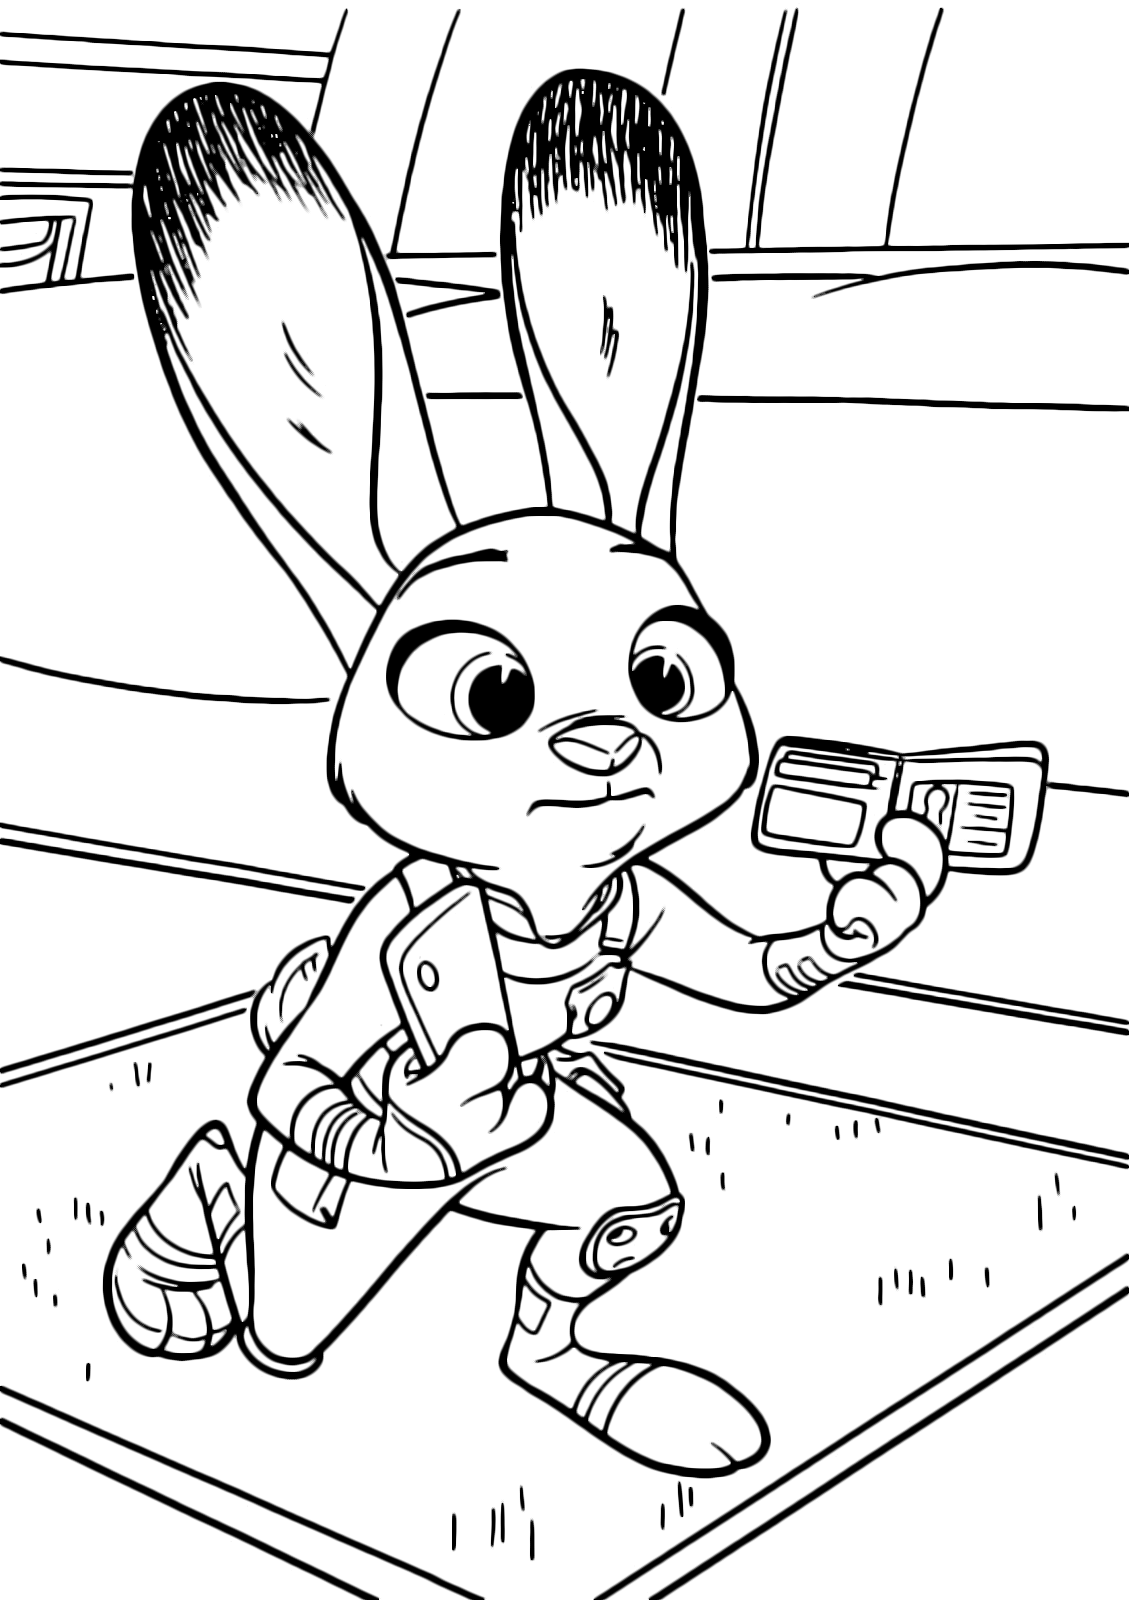 Judy Hopps coloring pages to download and print for free